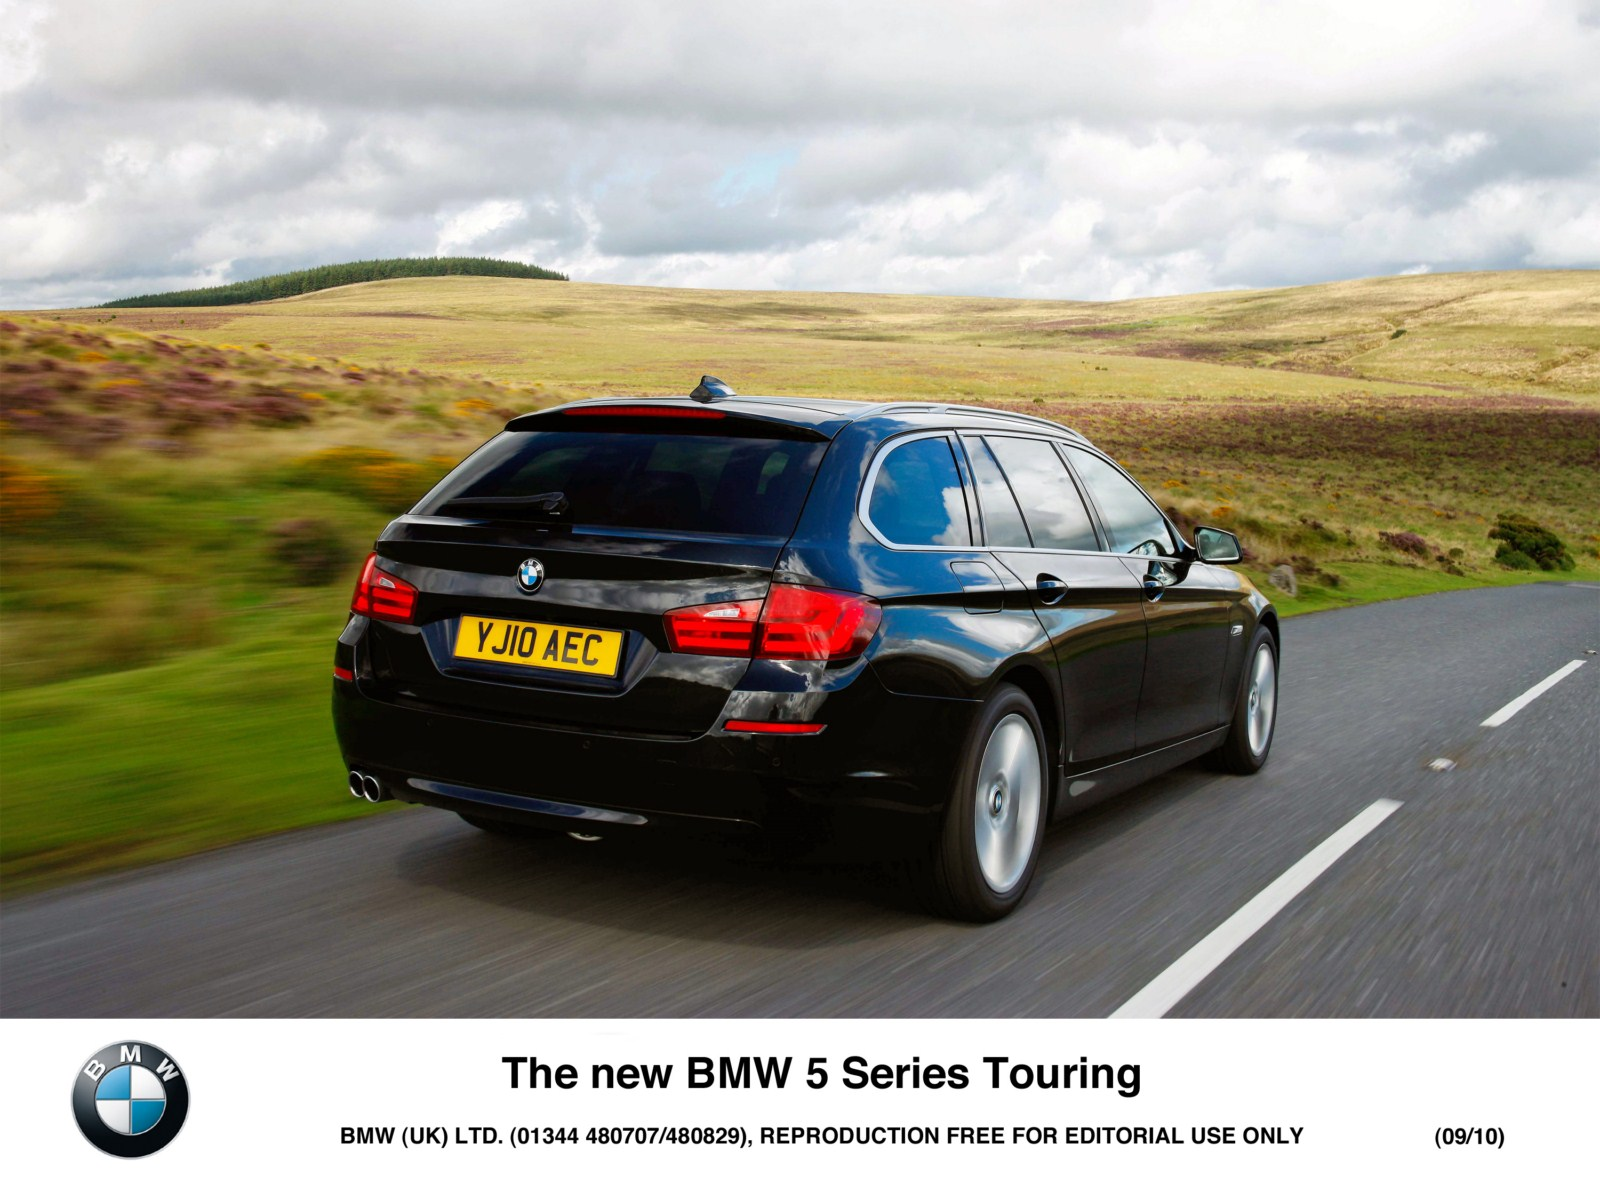 2011 bmw 5 series touring pictures 1